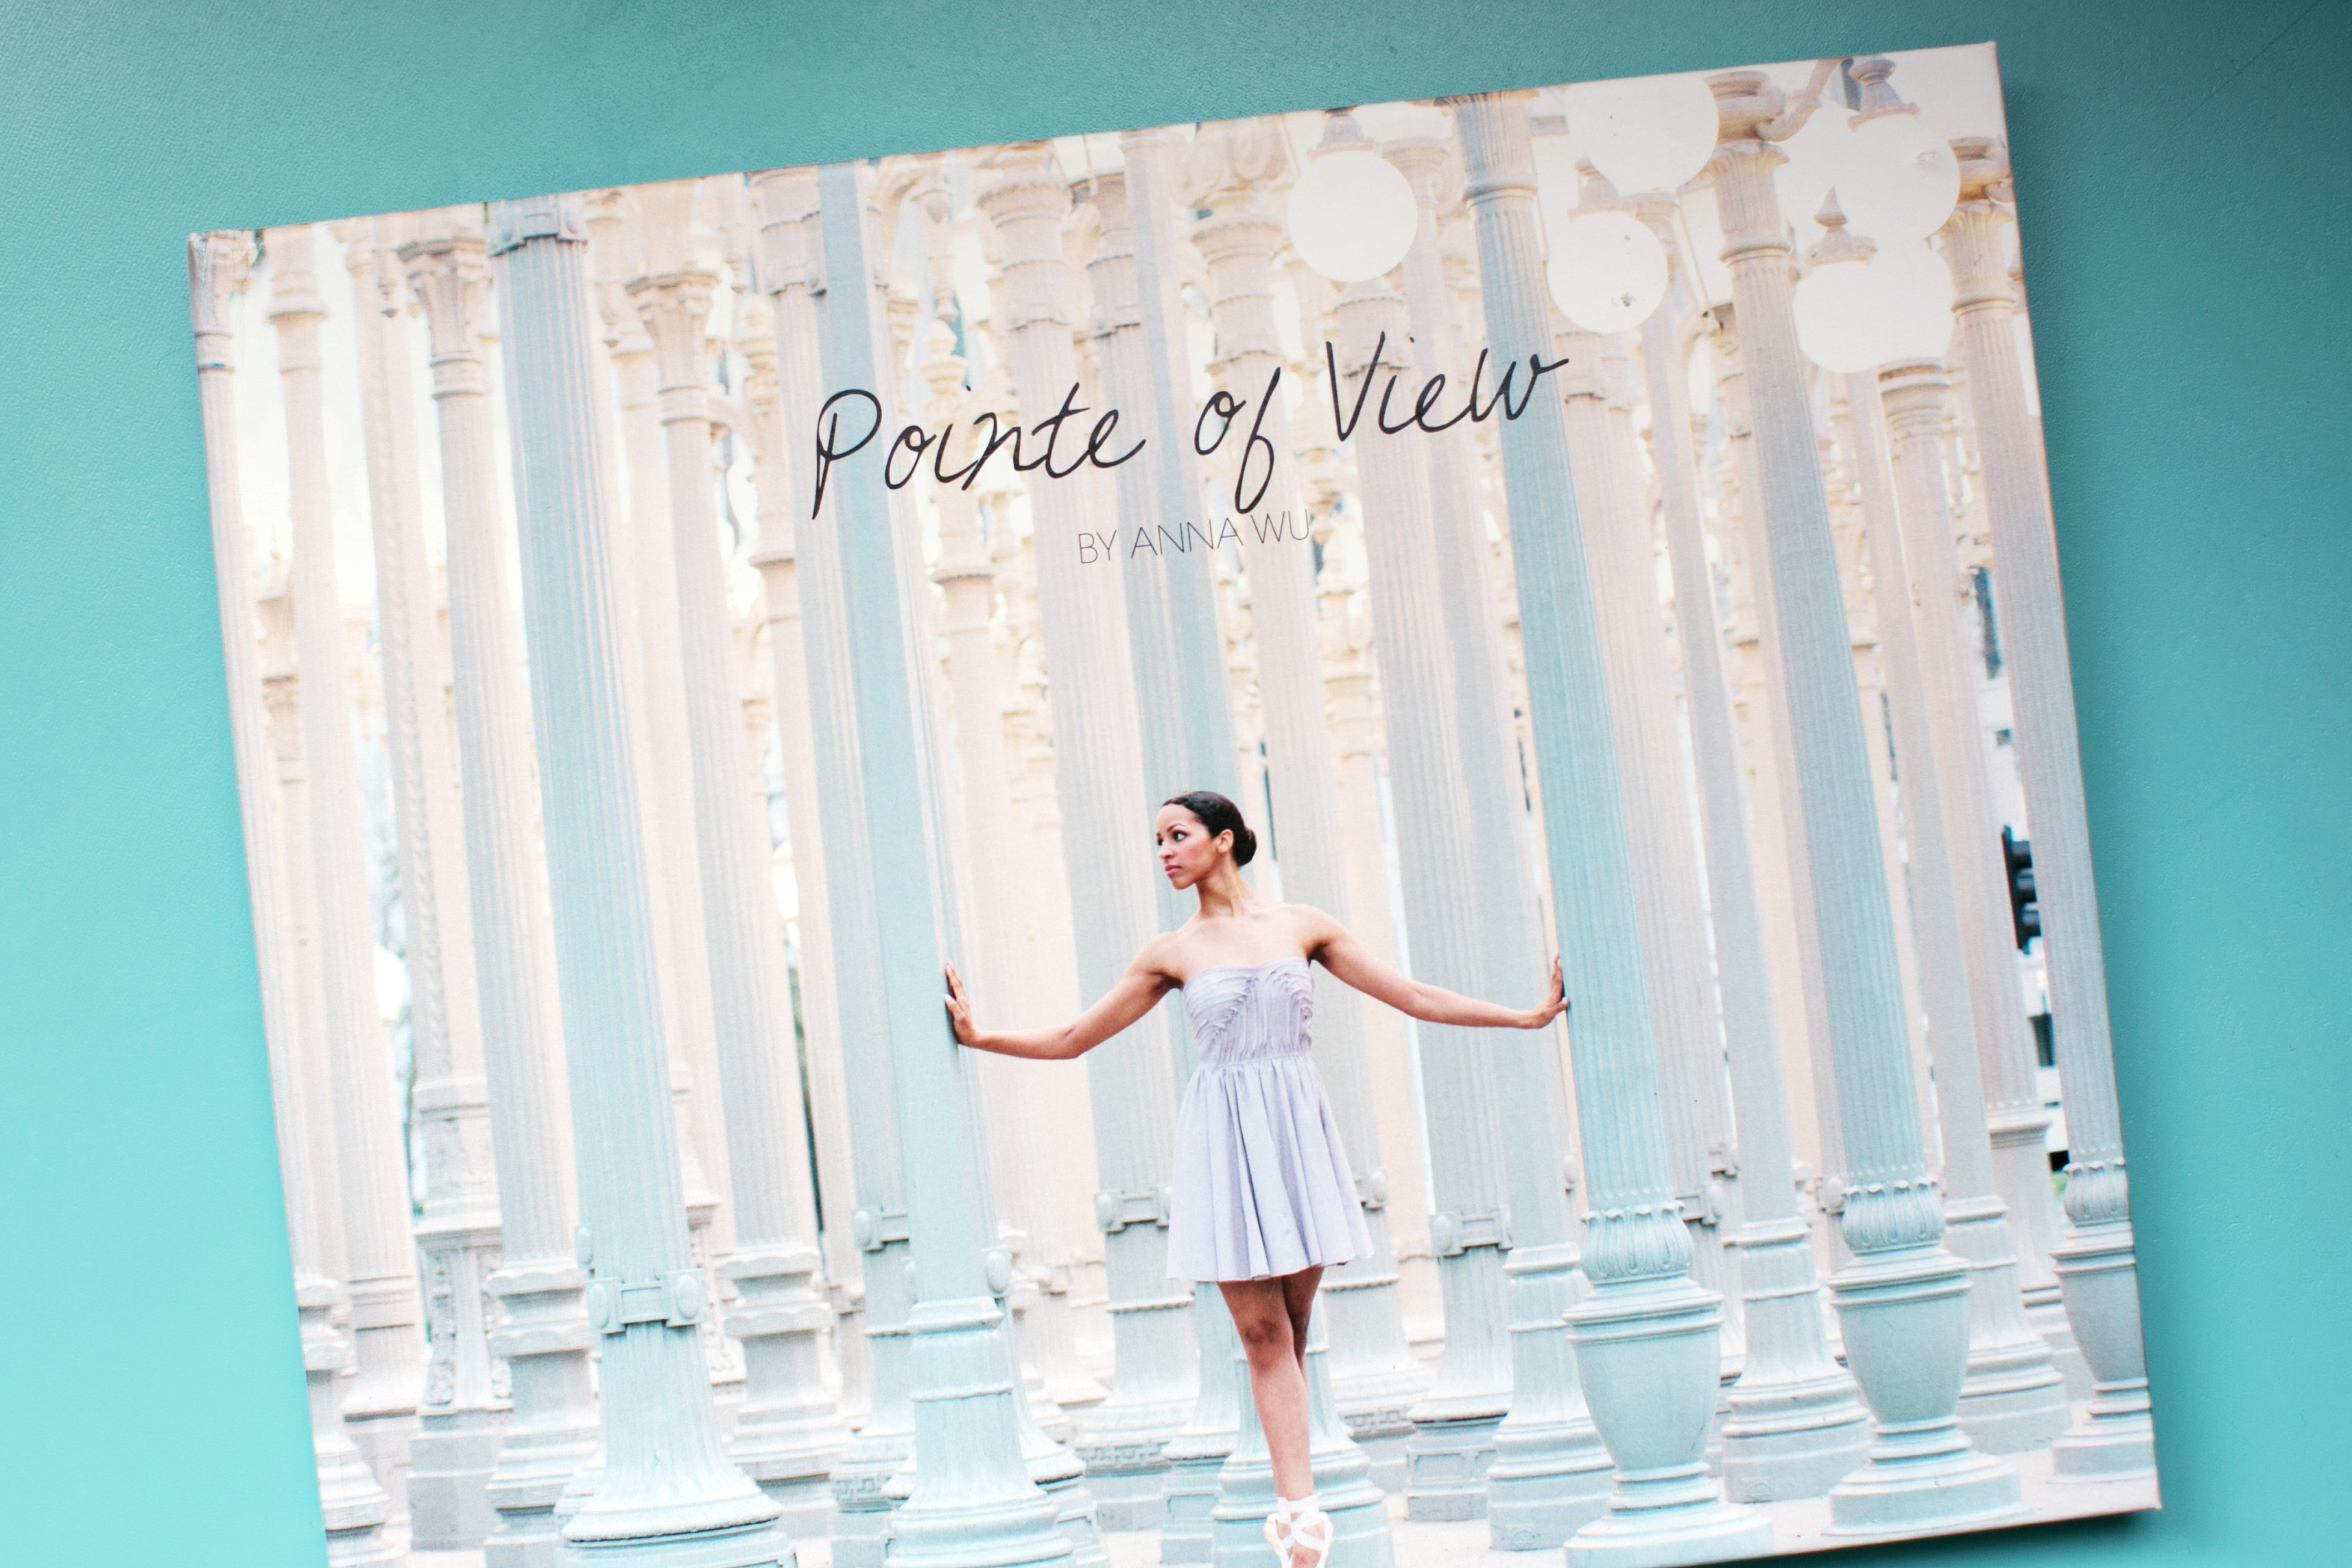 Pointe of View ballerina photography book on sale in the online store | povbook_04-2